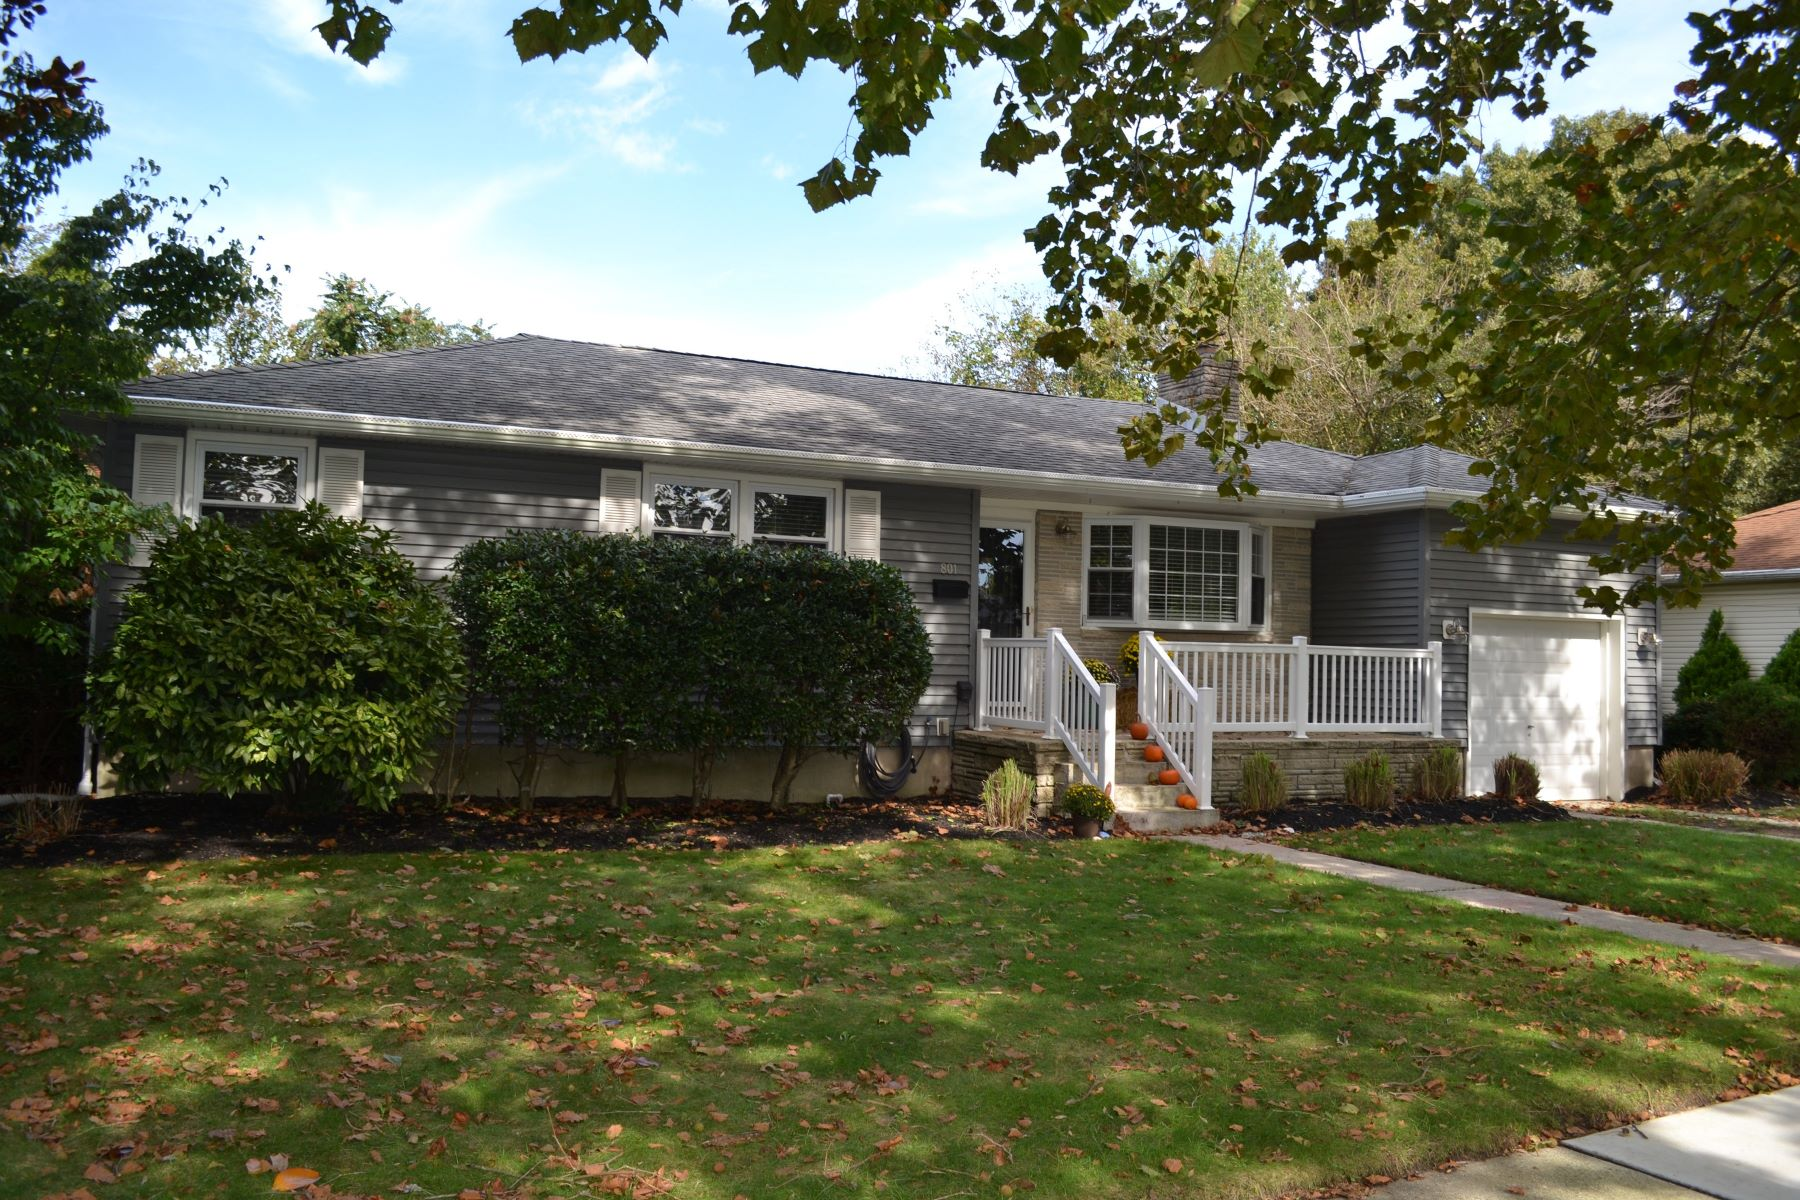 Single Family Home for Sale at 801 Debora Ave Northfield, New Jersey 08225 United States